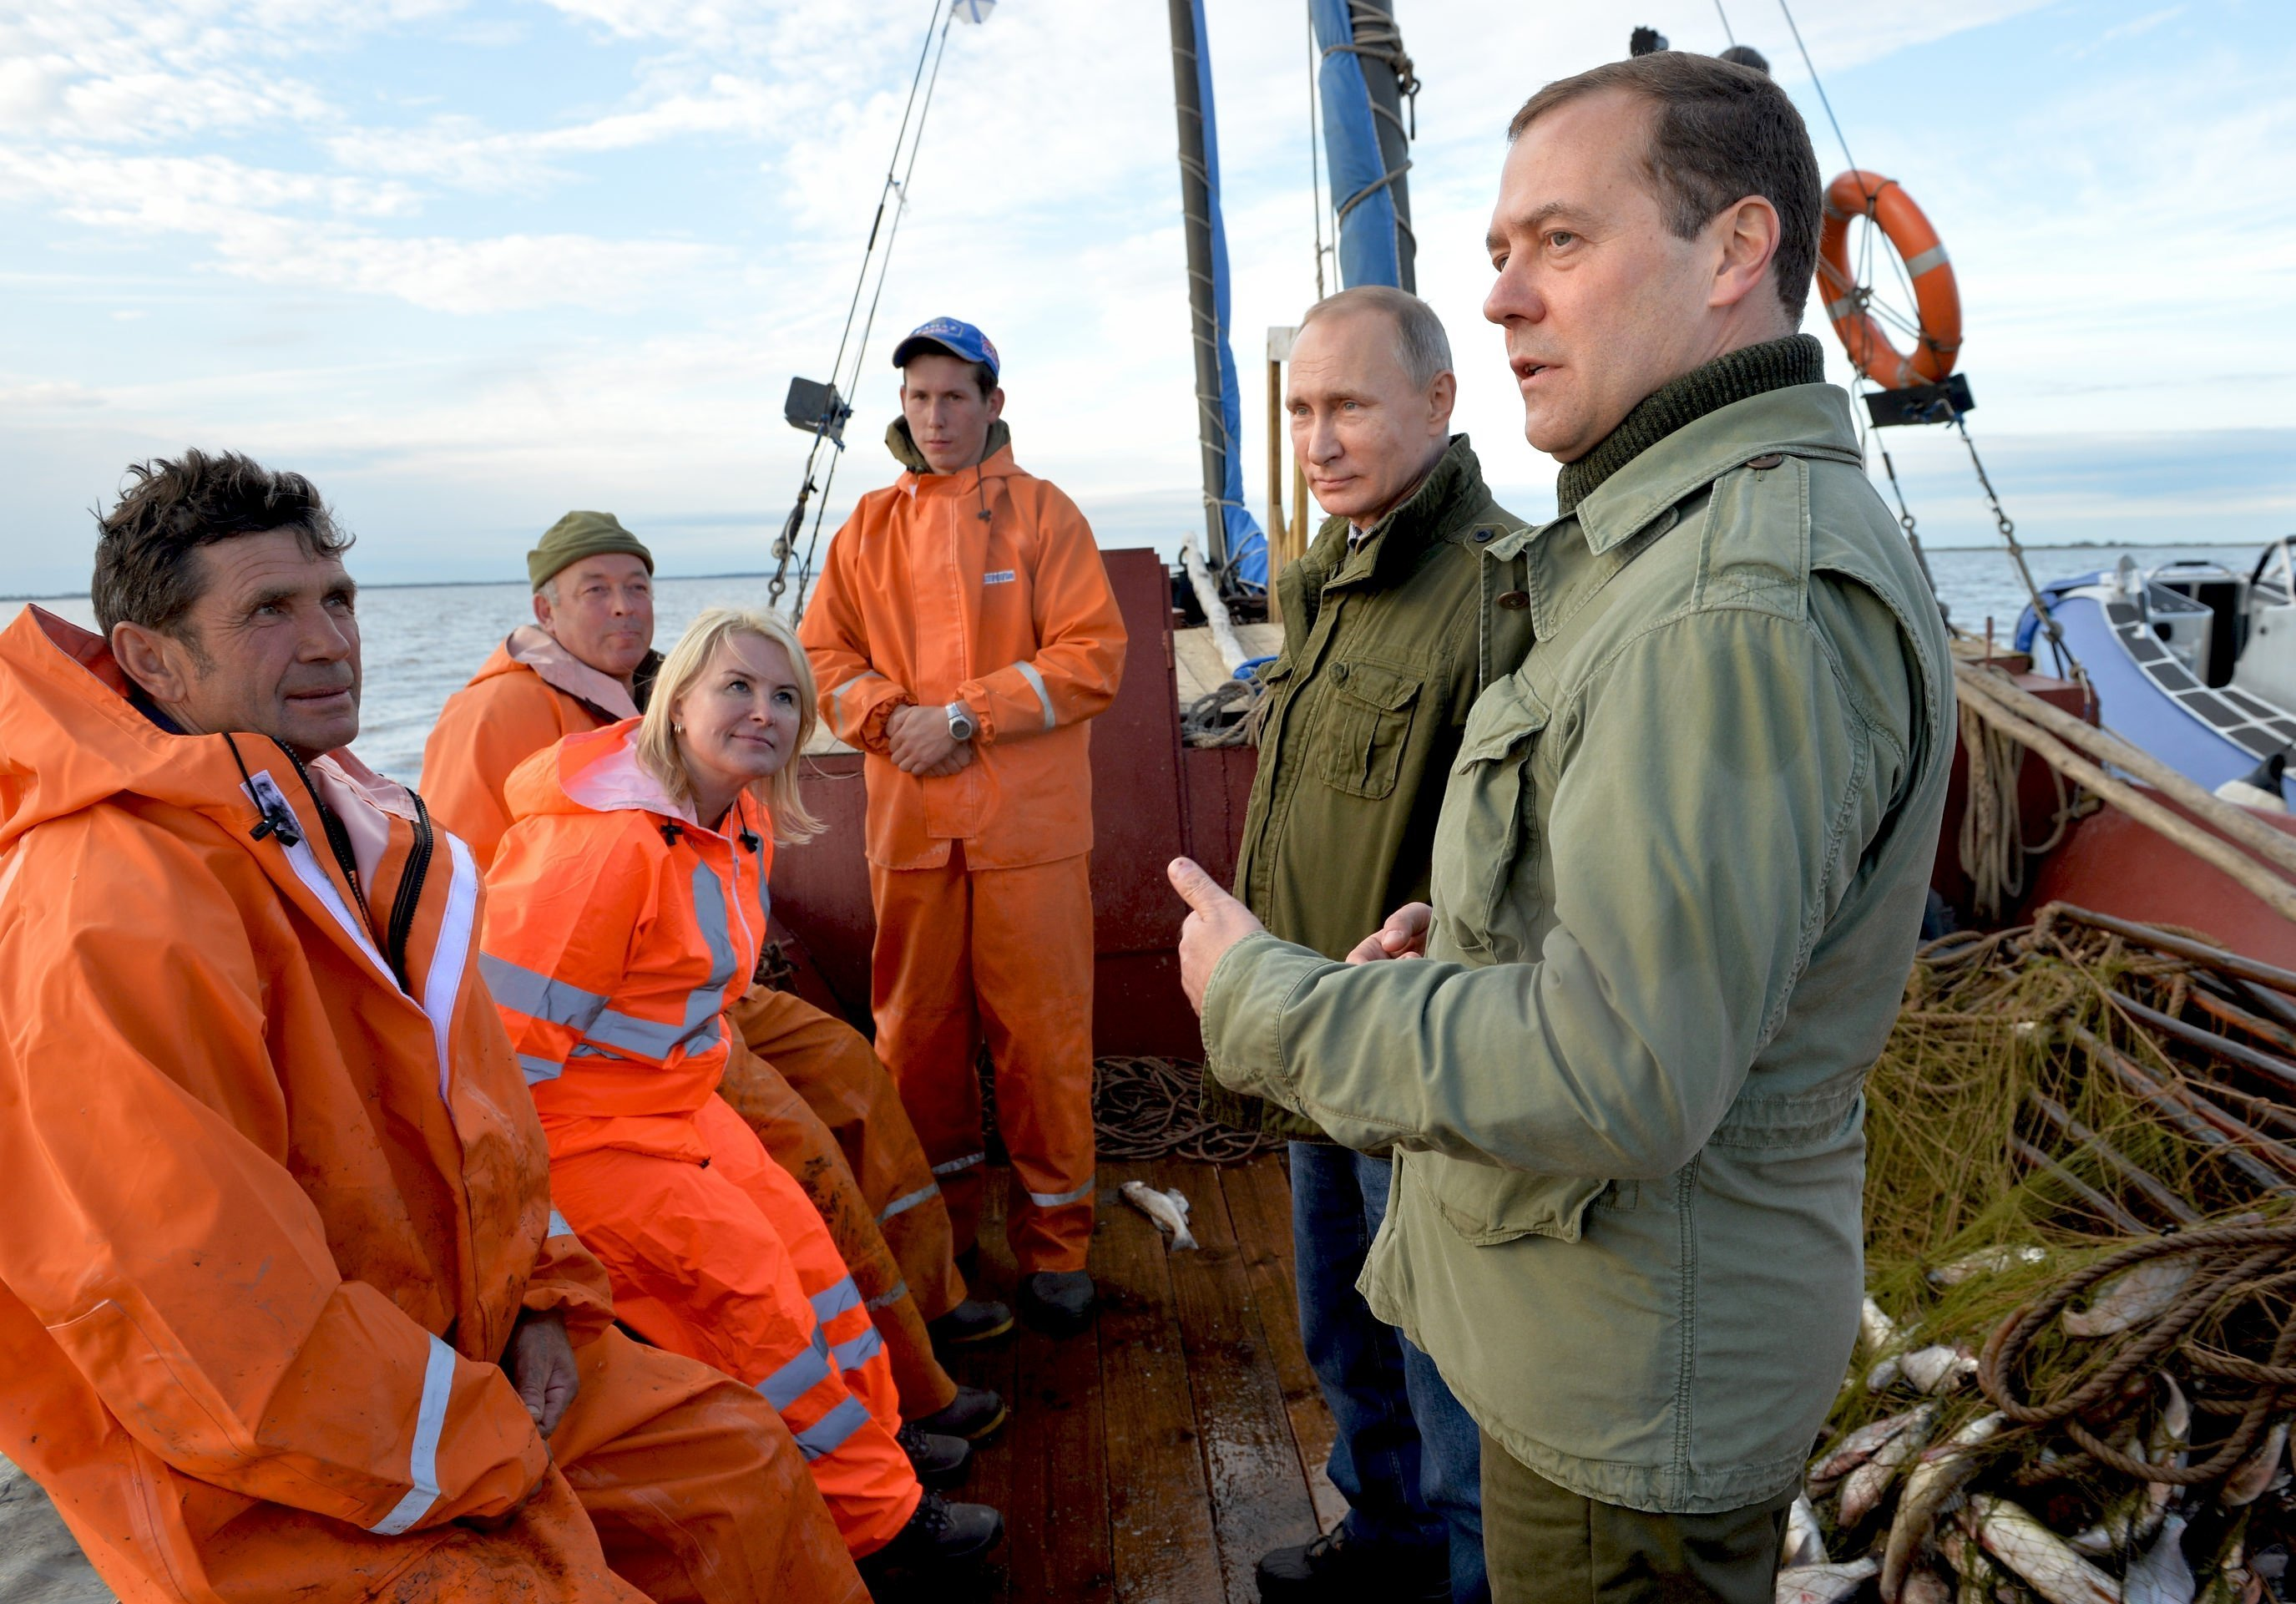 September 10, 2016. Russian President Vladimir Putin, second right, and Prime Minister Dmitry Medvedev, right, talk with fishermen during a boat tour of Lake Ilmen, Novgorod Region.